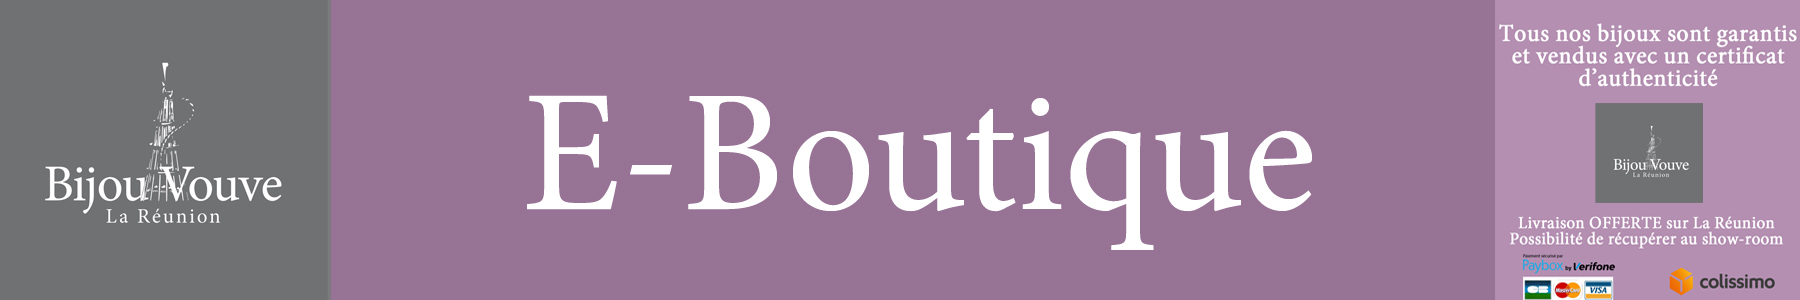 header_eboutique